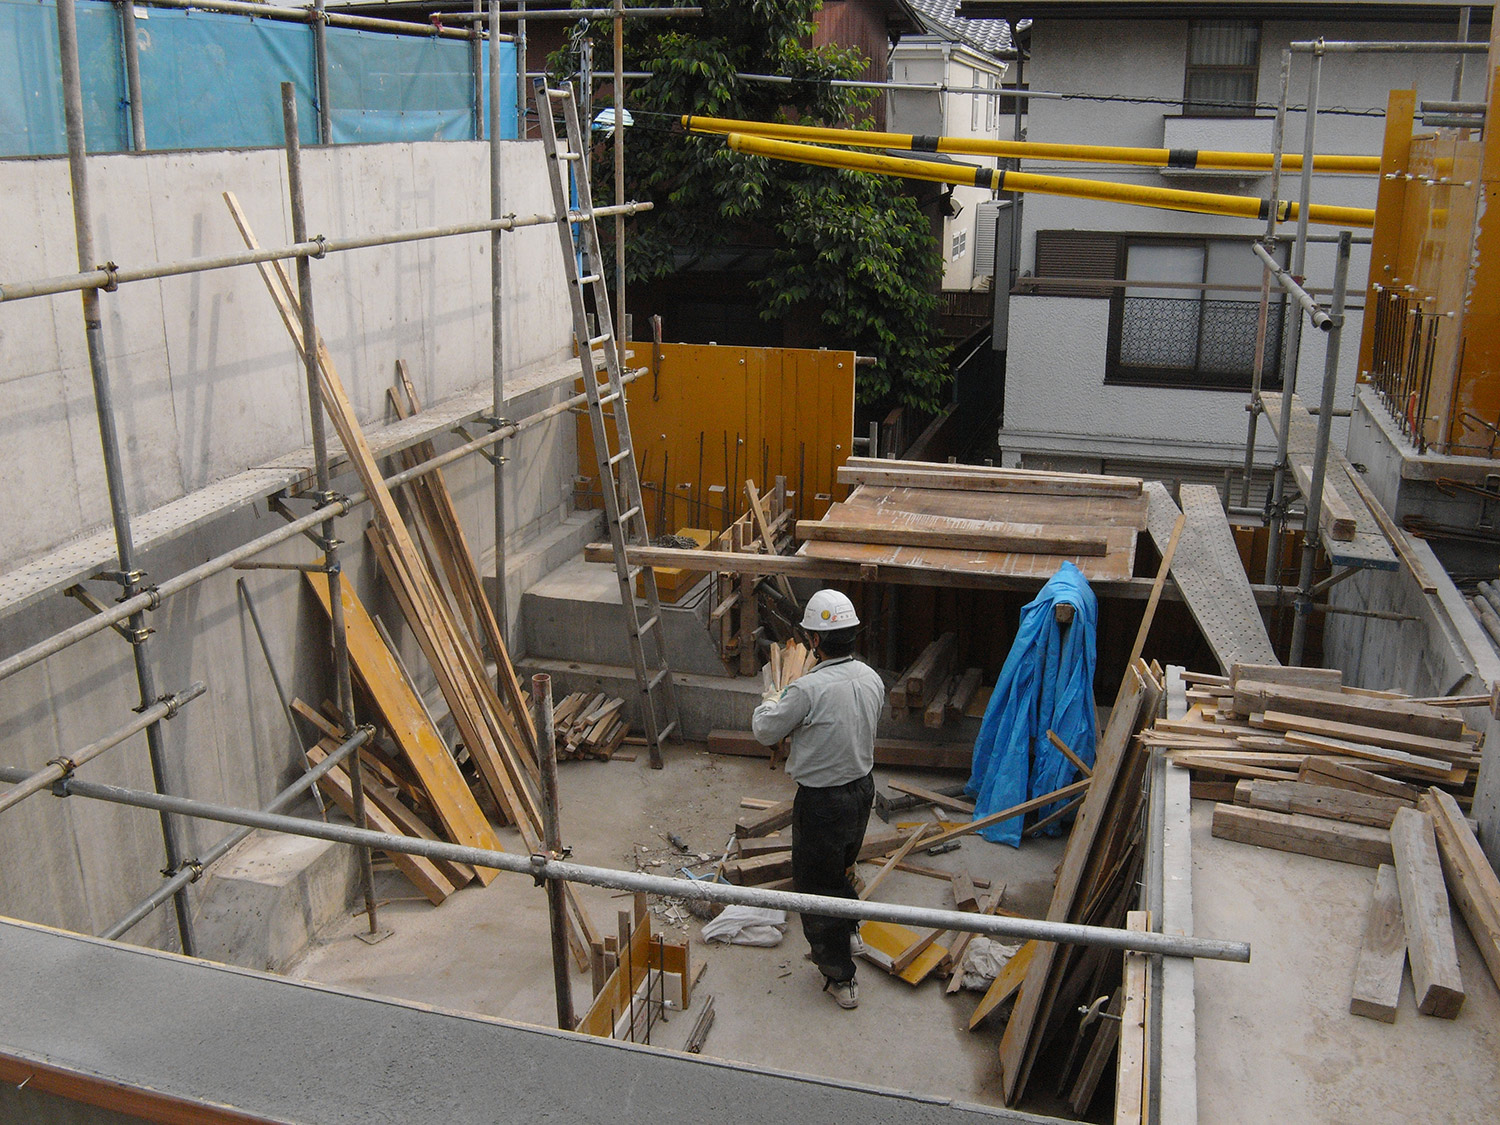 First floor part mold release. The courtyard gradually appears.